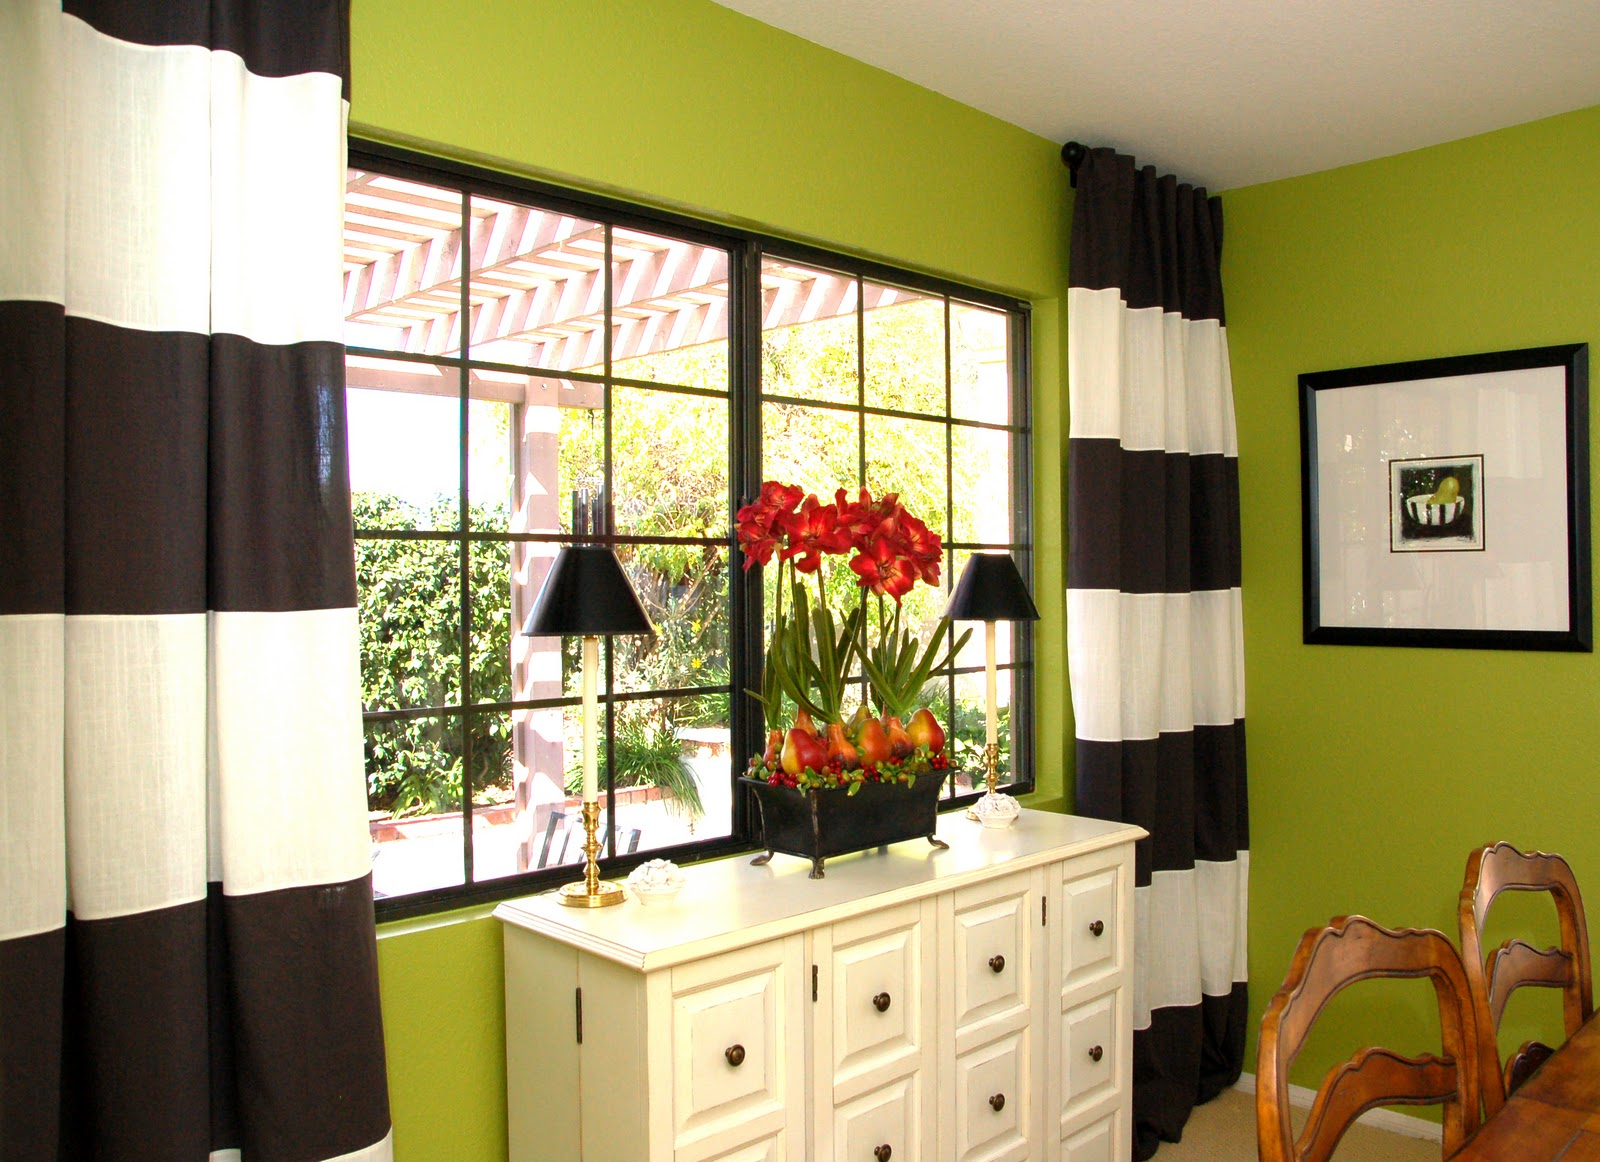 Curtain For Green Wall | Home design ideas